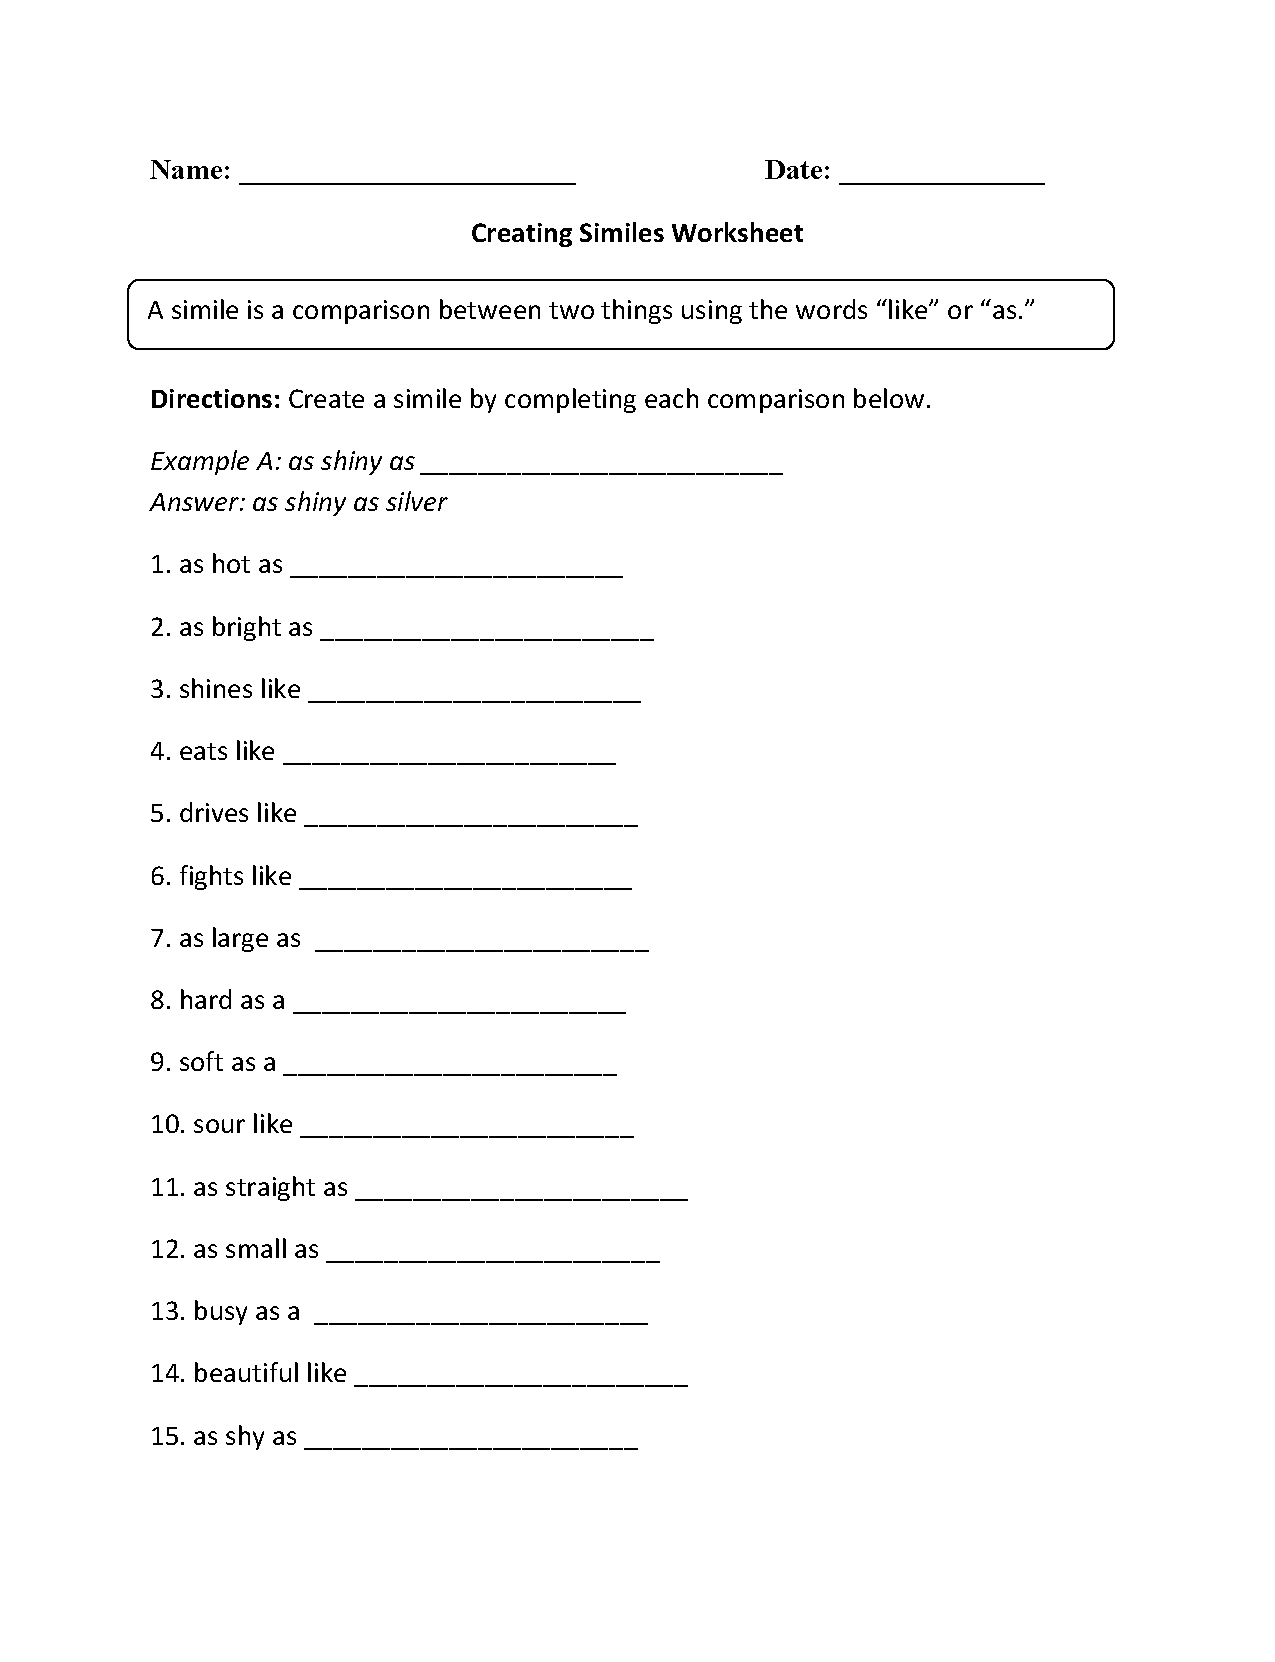 worksheet Similes And Metaphors Ks2 Worksheets englishlinx com similes worksheets simile worksheet